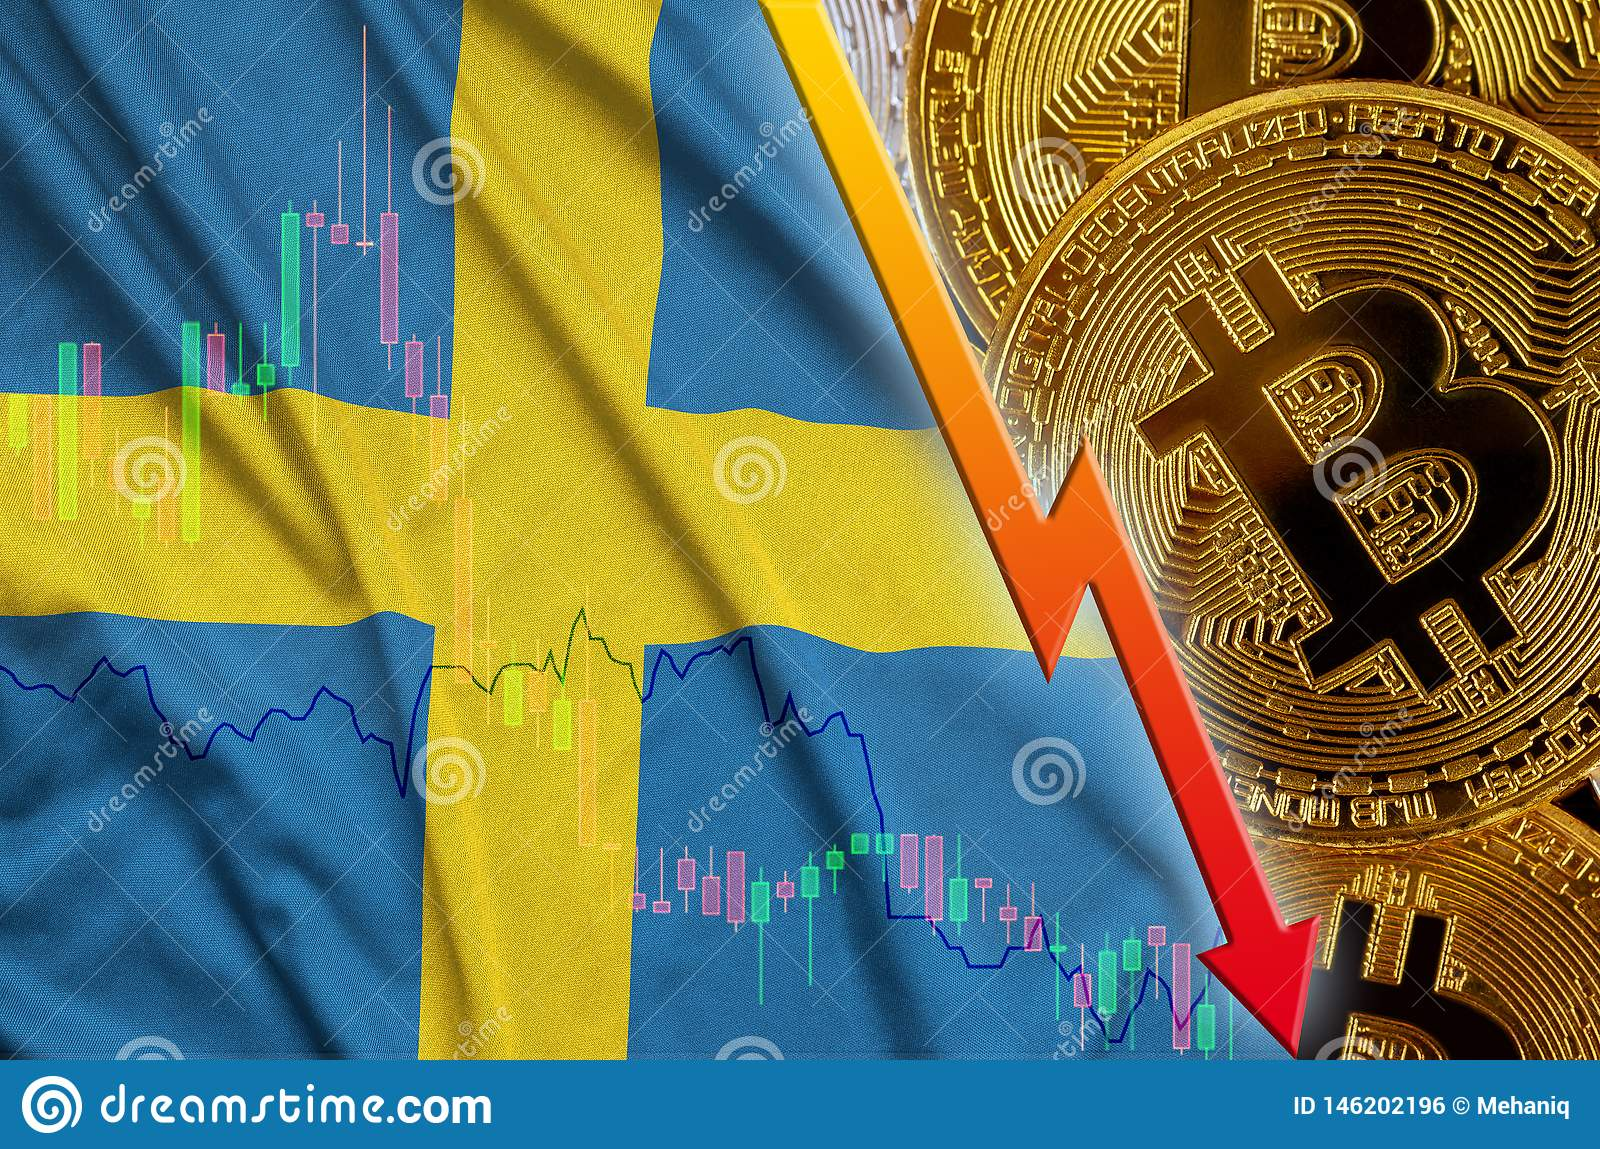 sweden cryptocurrency price